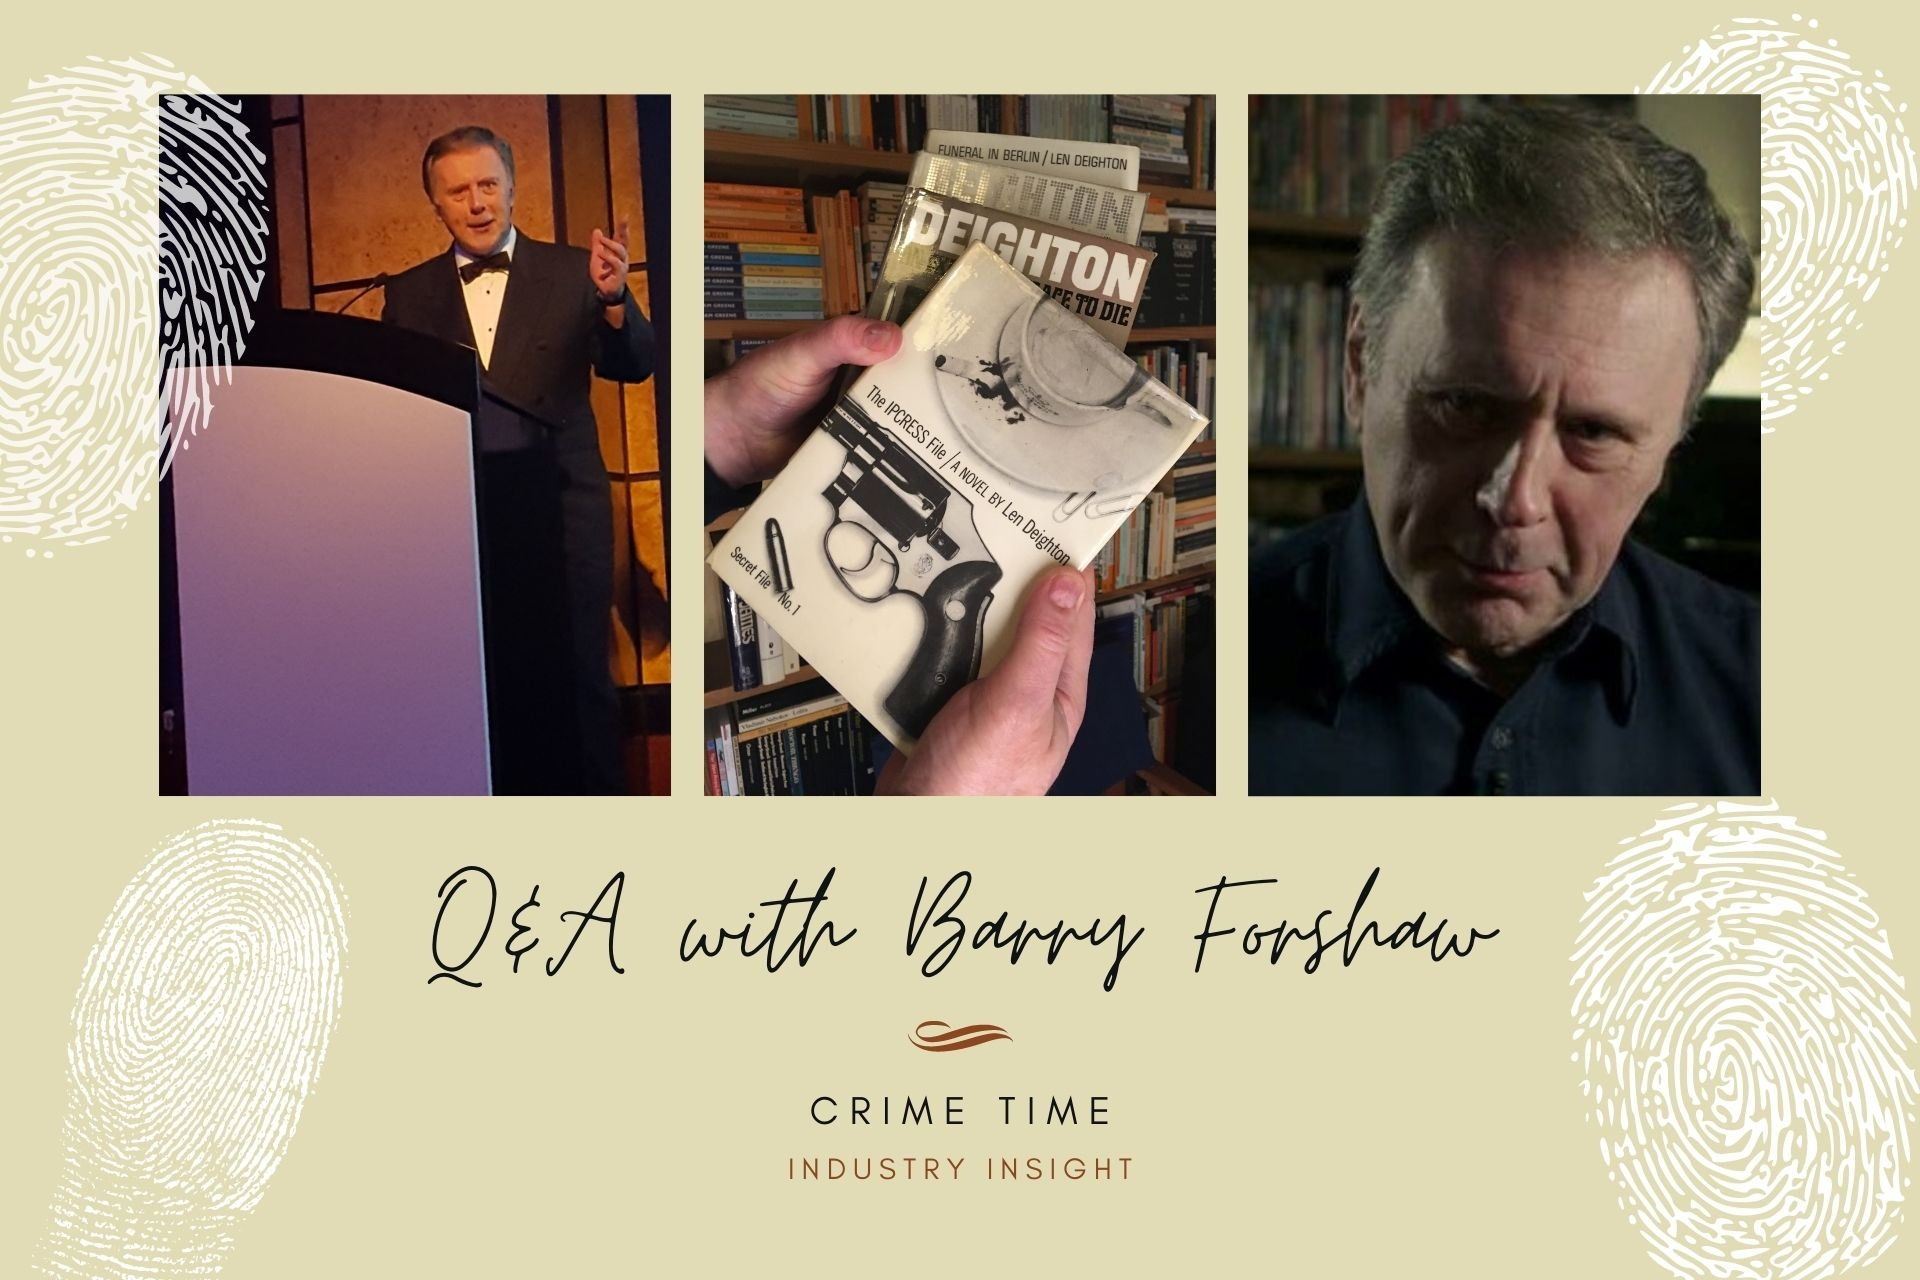 Industry Insight: Q&A with Barry Forshaw (Crime Time)